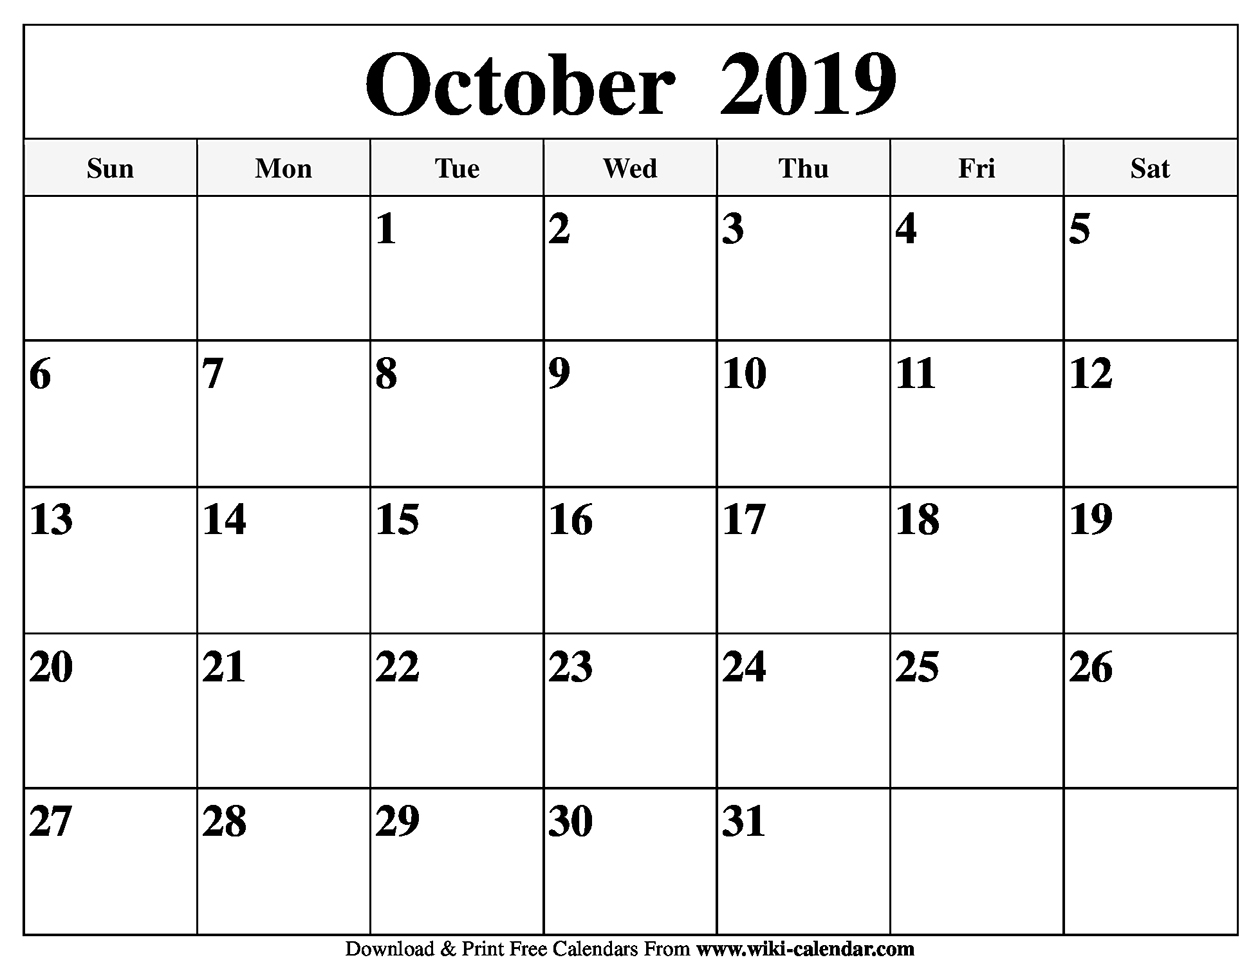 photograph relating to Printable Oct Calendar titled Totally free Printable Oct 2019 Calendar